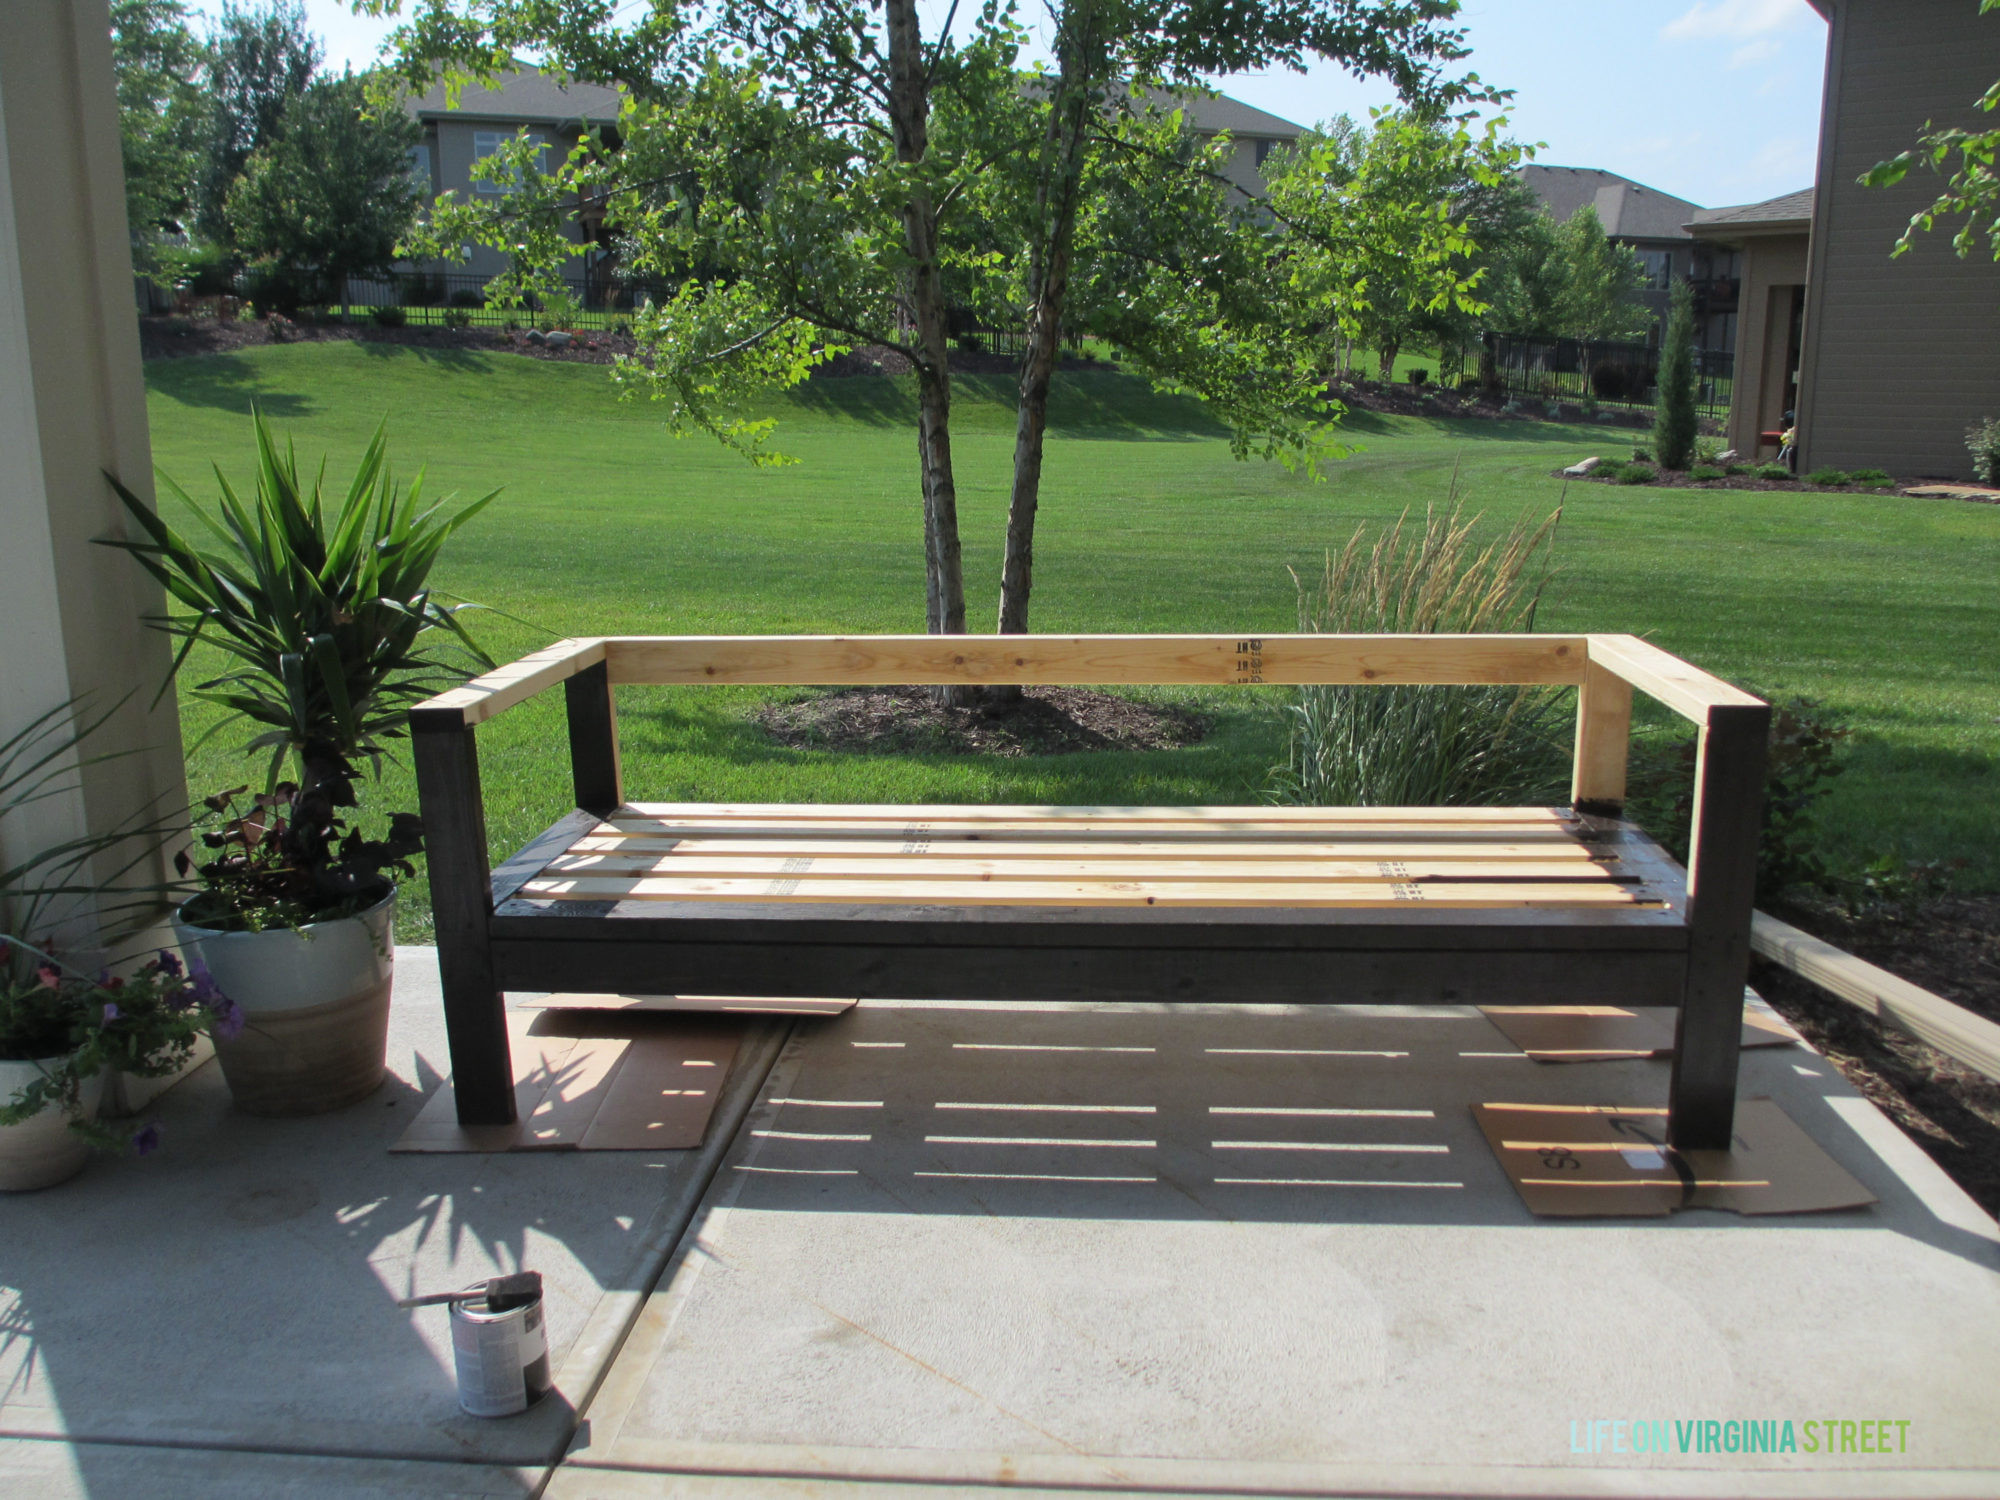 1583874637 996 The Best Ideas for Outdoor sofa Diy – Home Family Style and Art Ideas